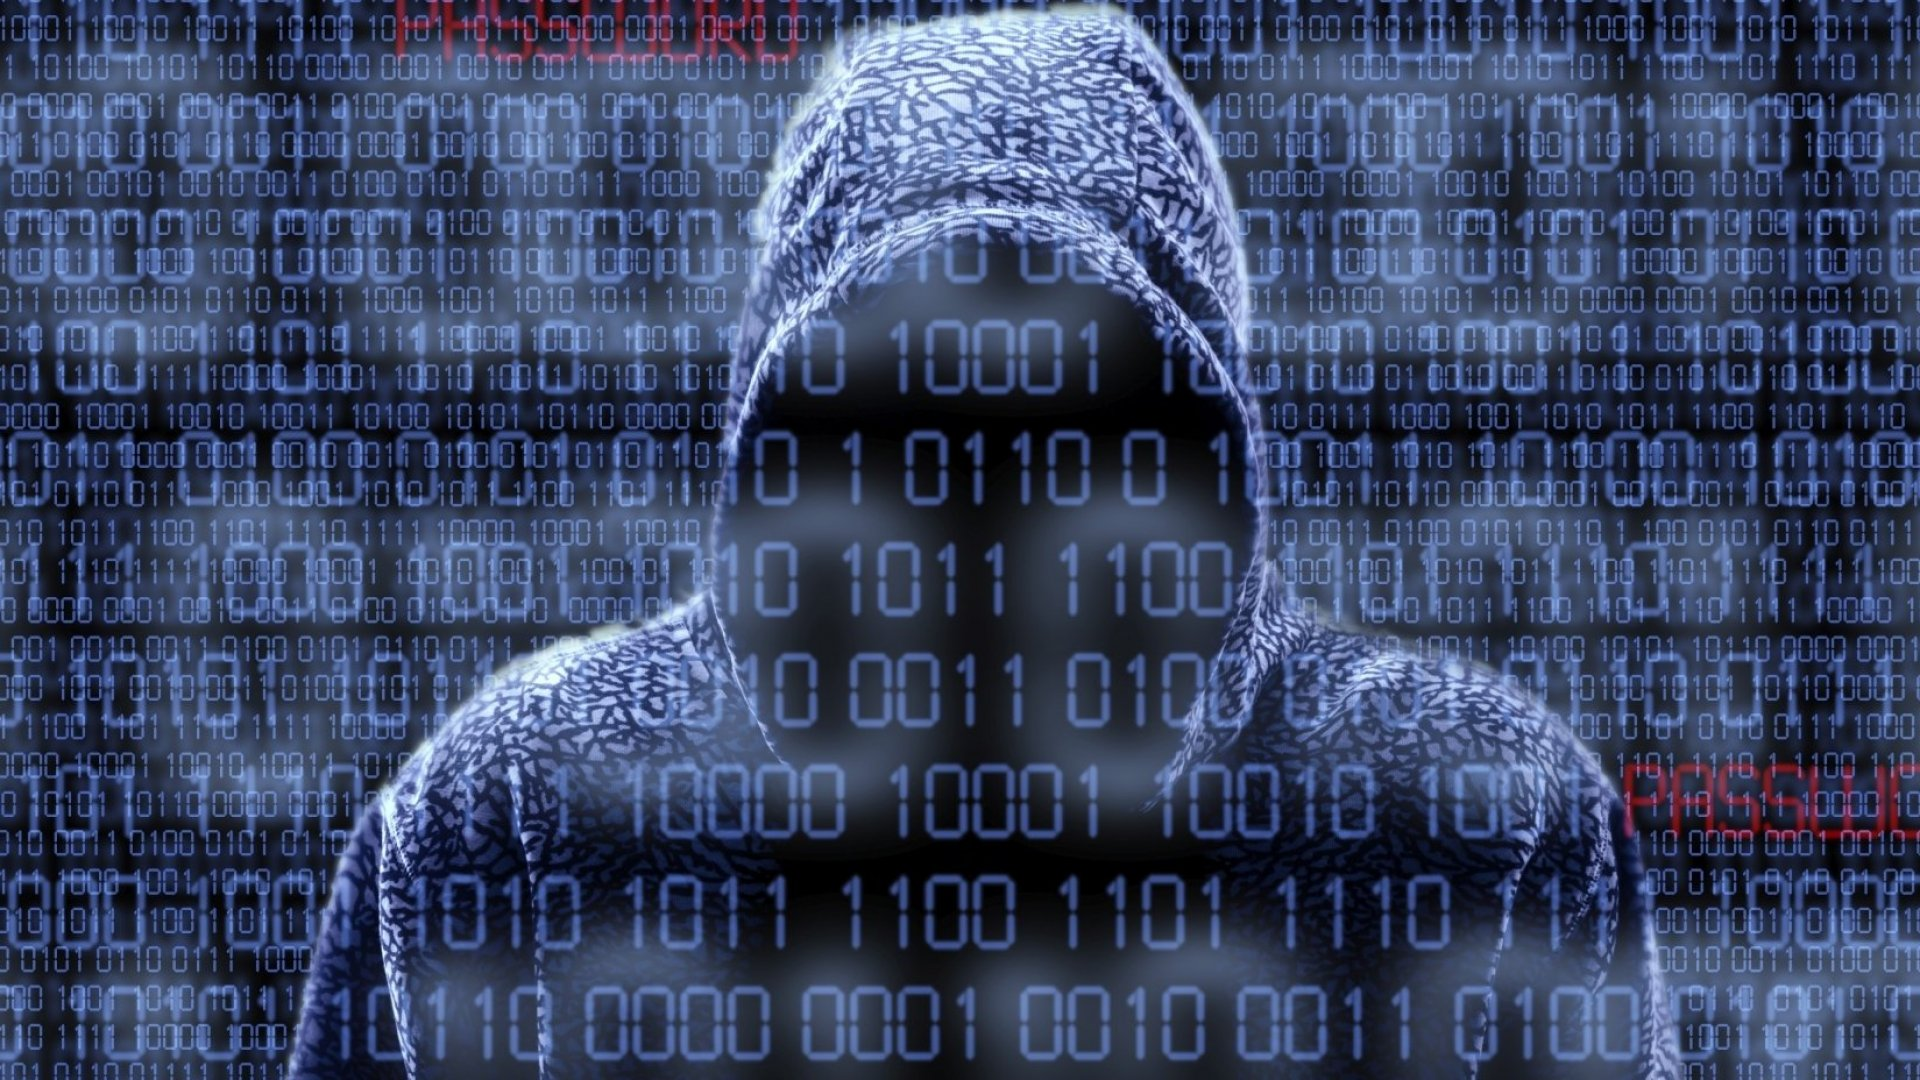 """Crooks Use New """"Blended"""" Malware To Steal $4Million From 24 Banks In Just A Few Days"""